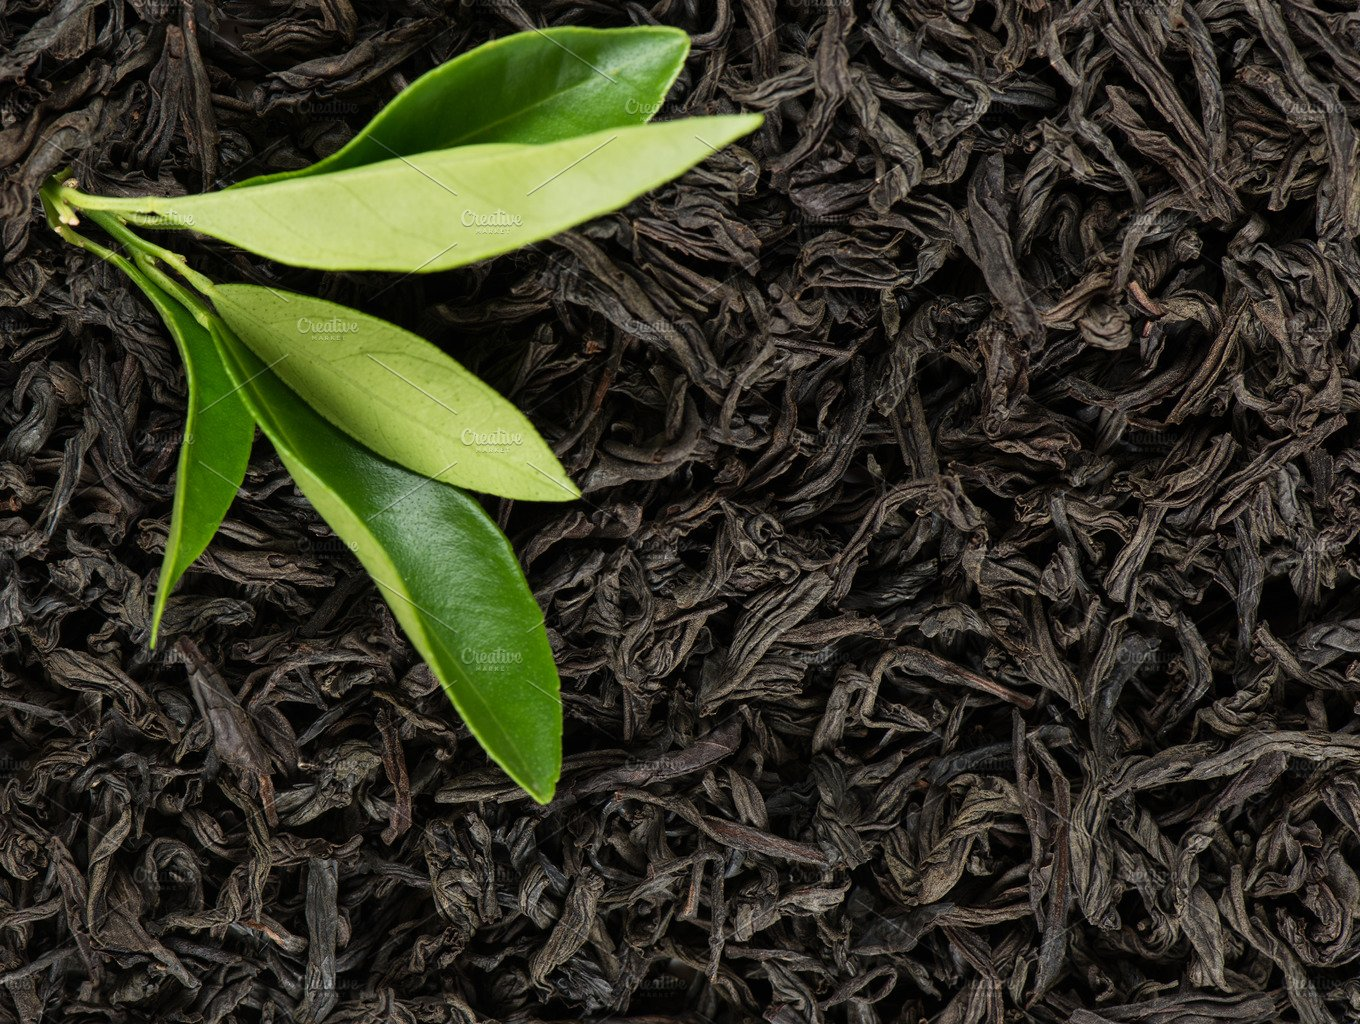 Loose Leaves vs Tea Bags: Why Loose Tea Leaves are more beneficial than even Pyramid Tea Bags?